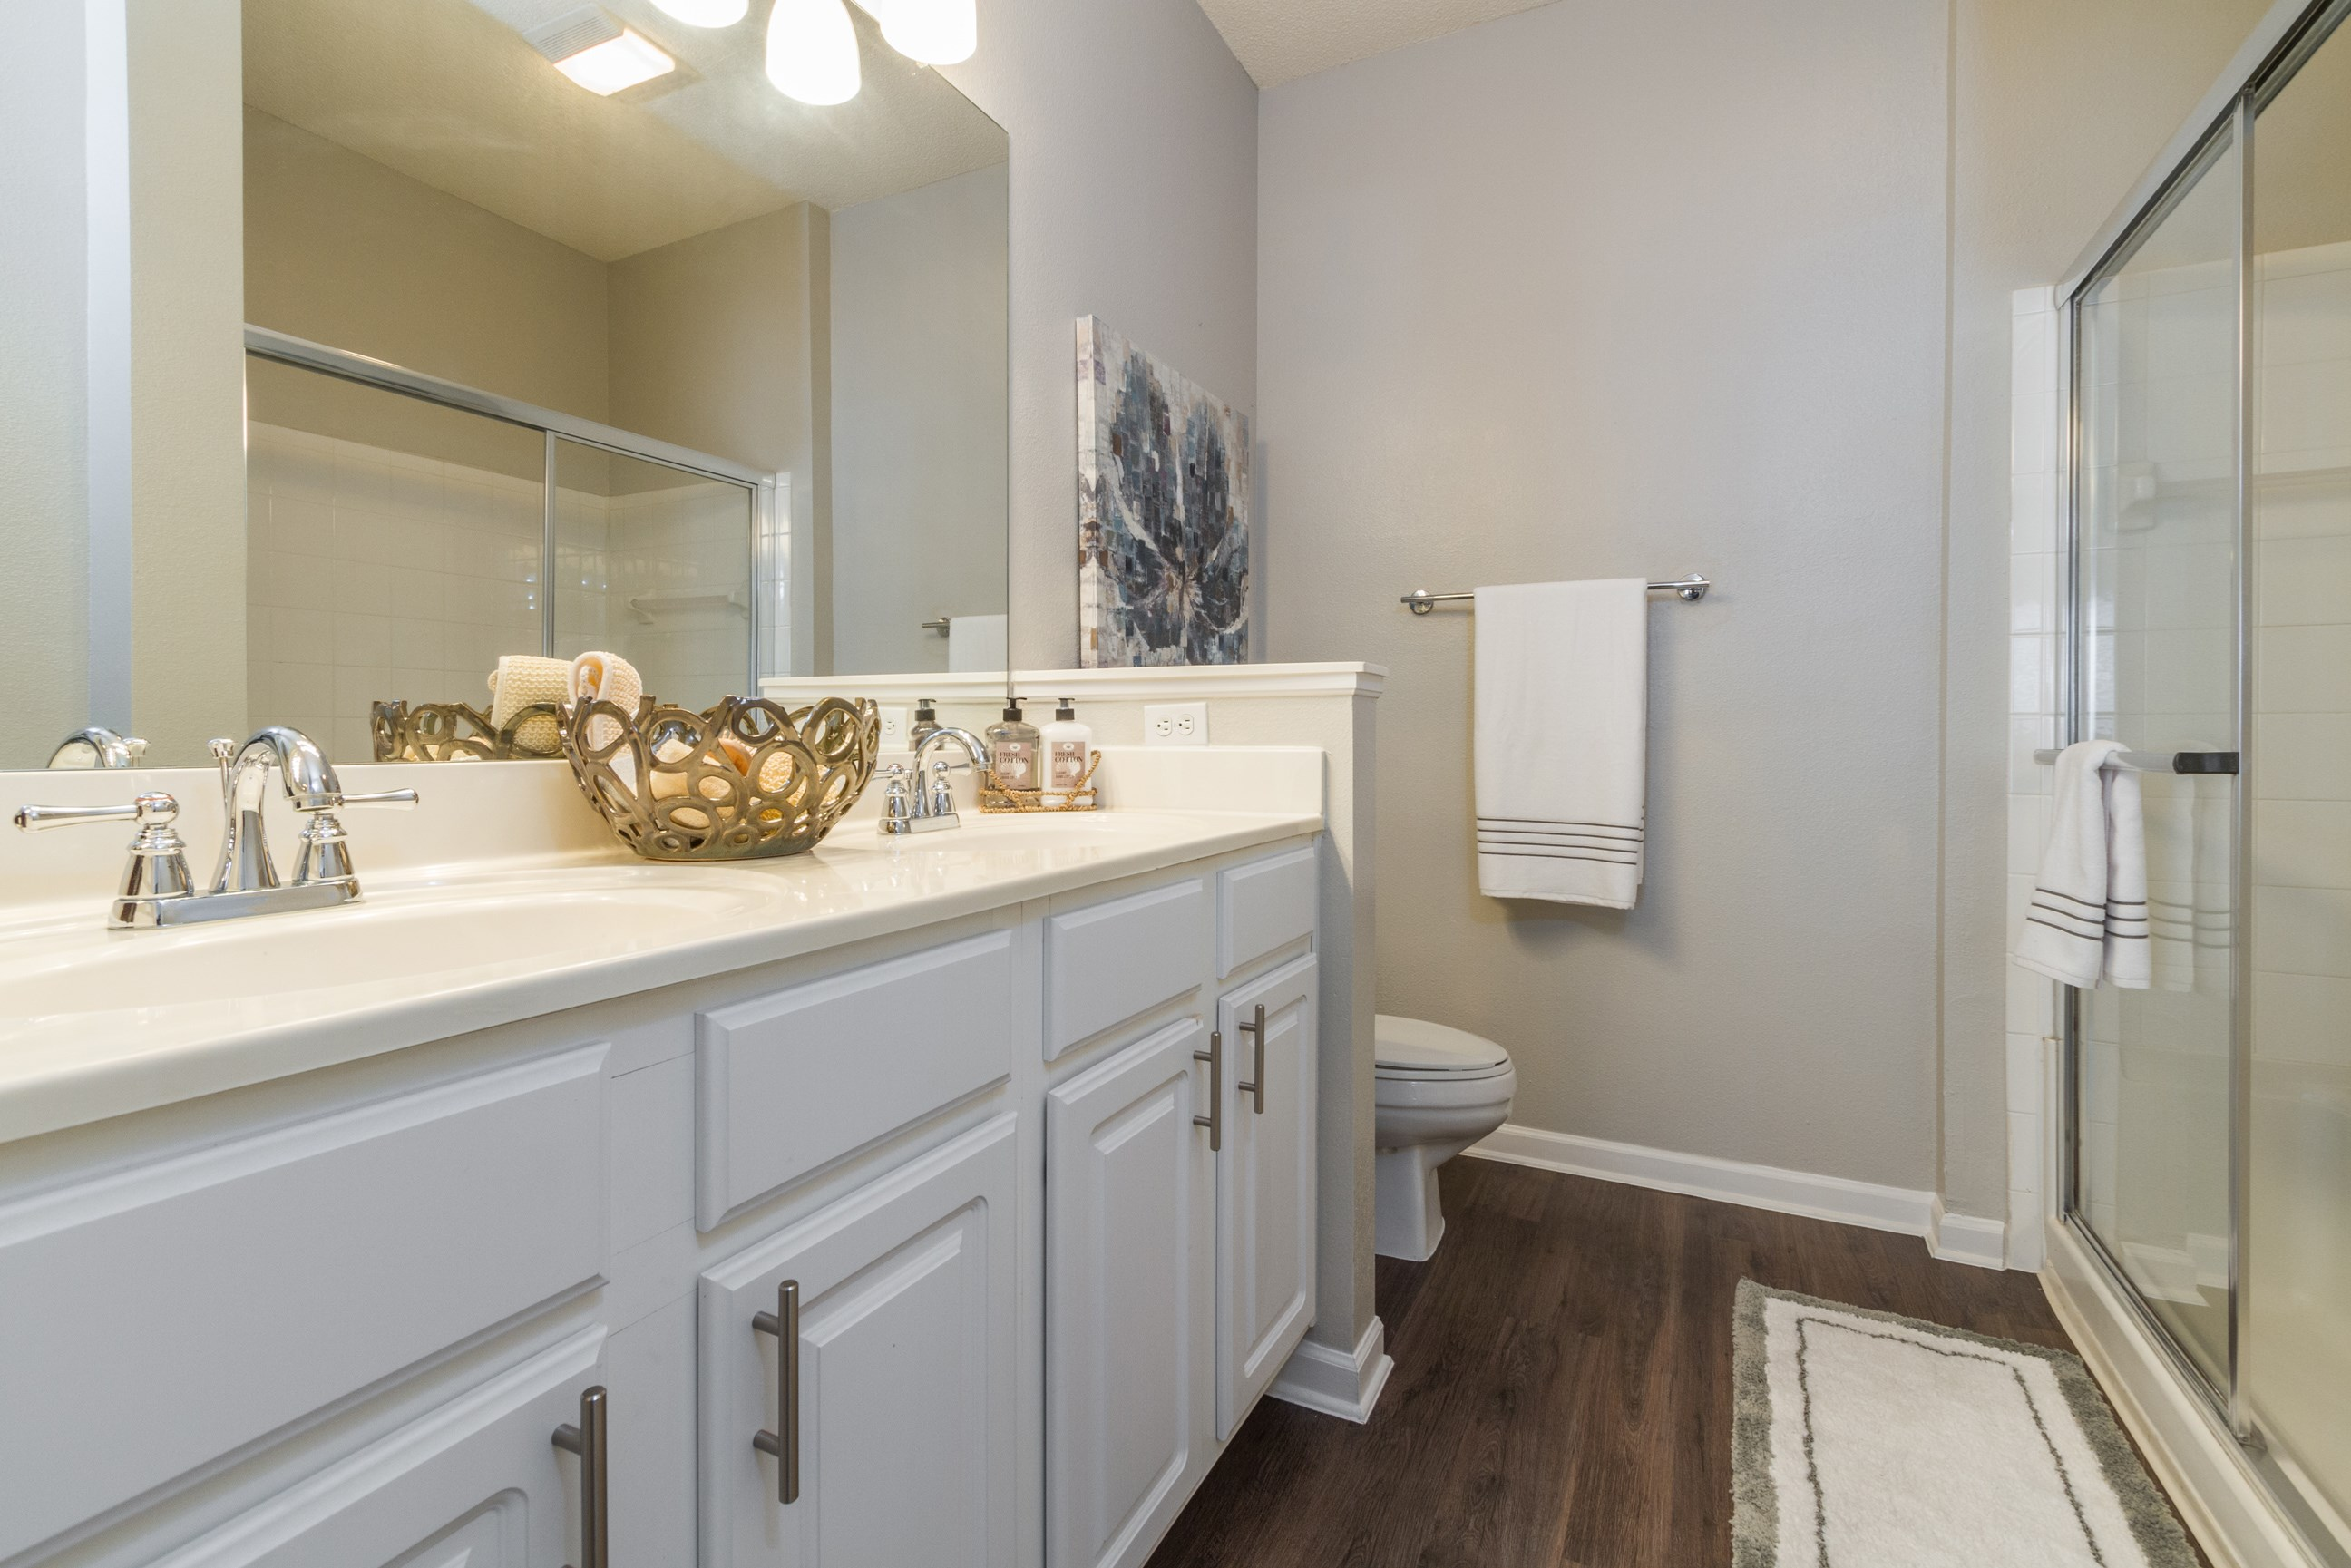 Bathroom at The Preserve at Tampa Palms Apartments in Tampa, FL